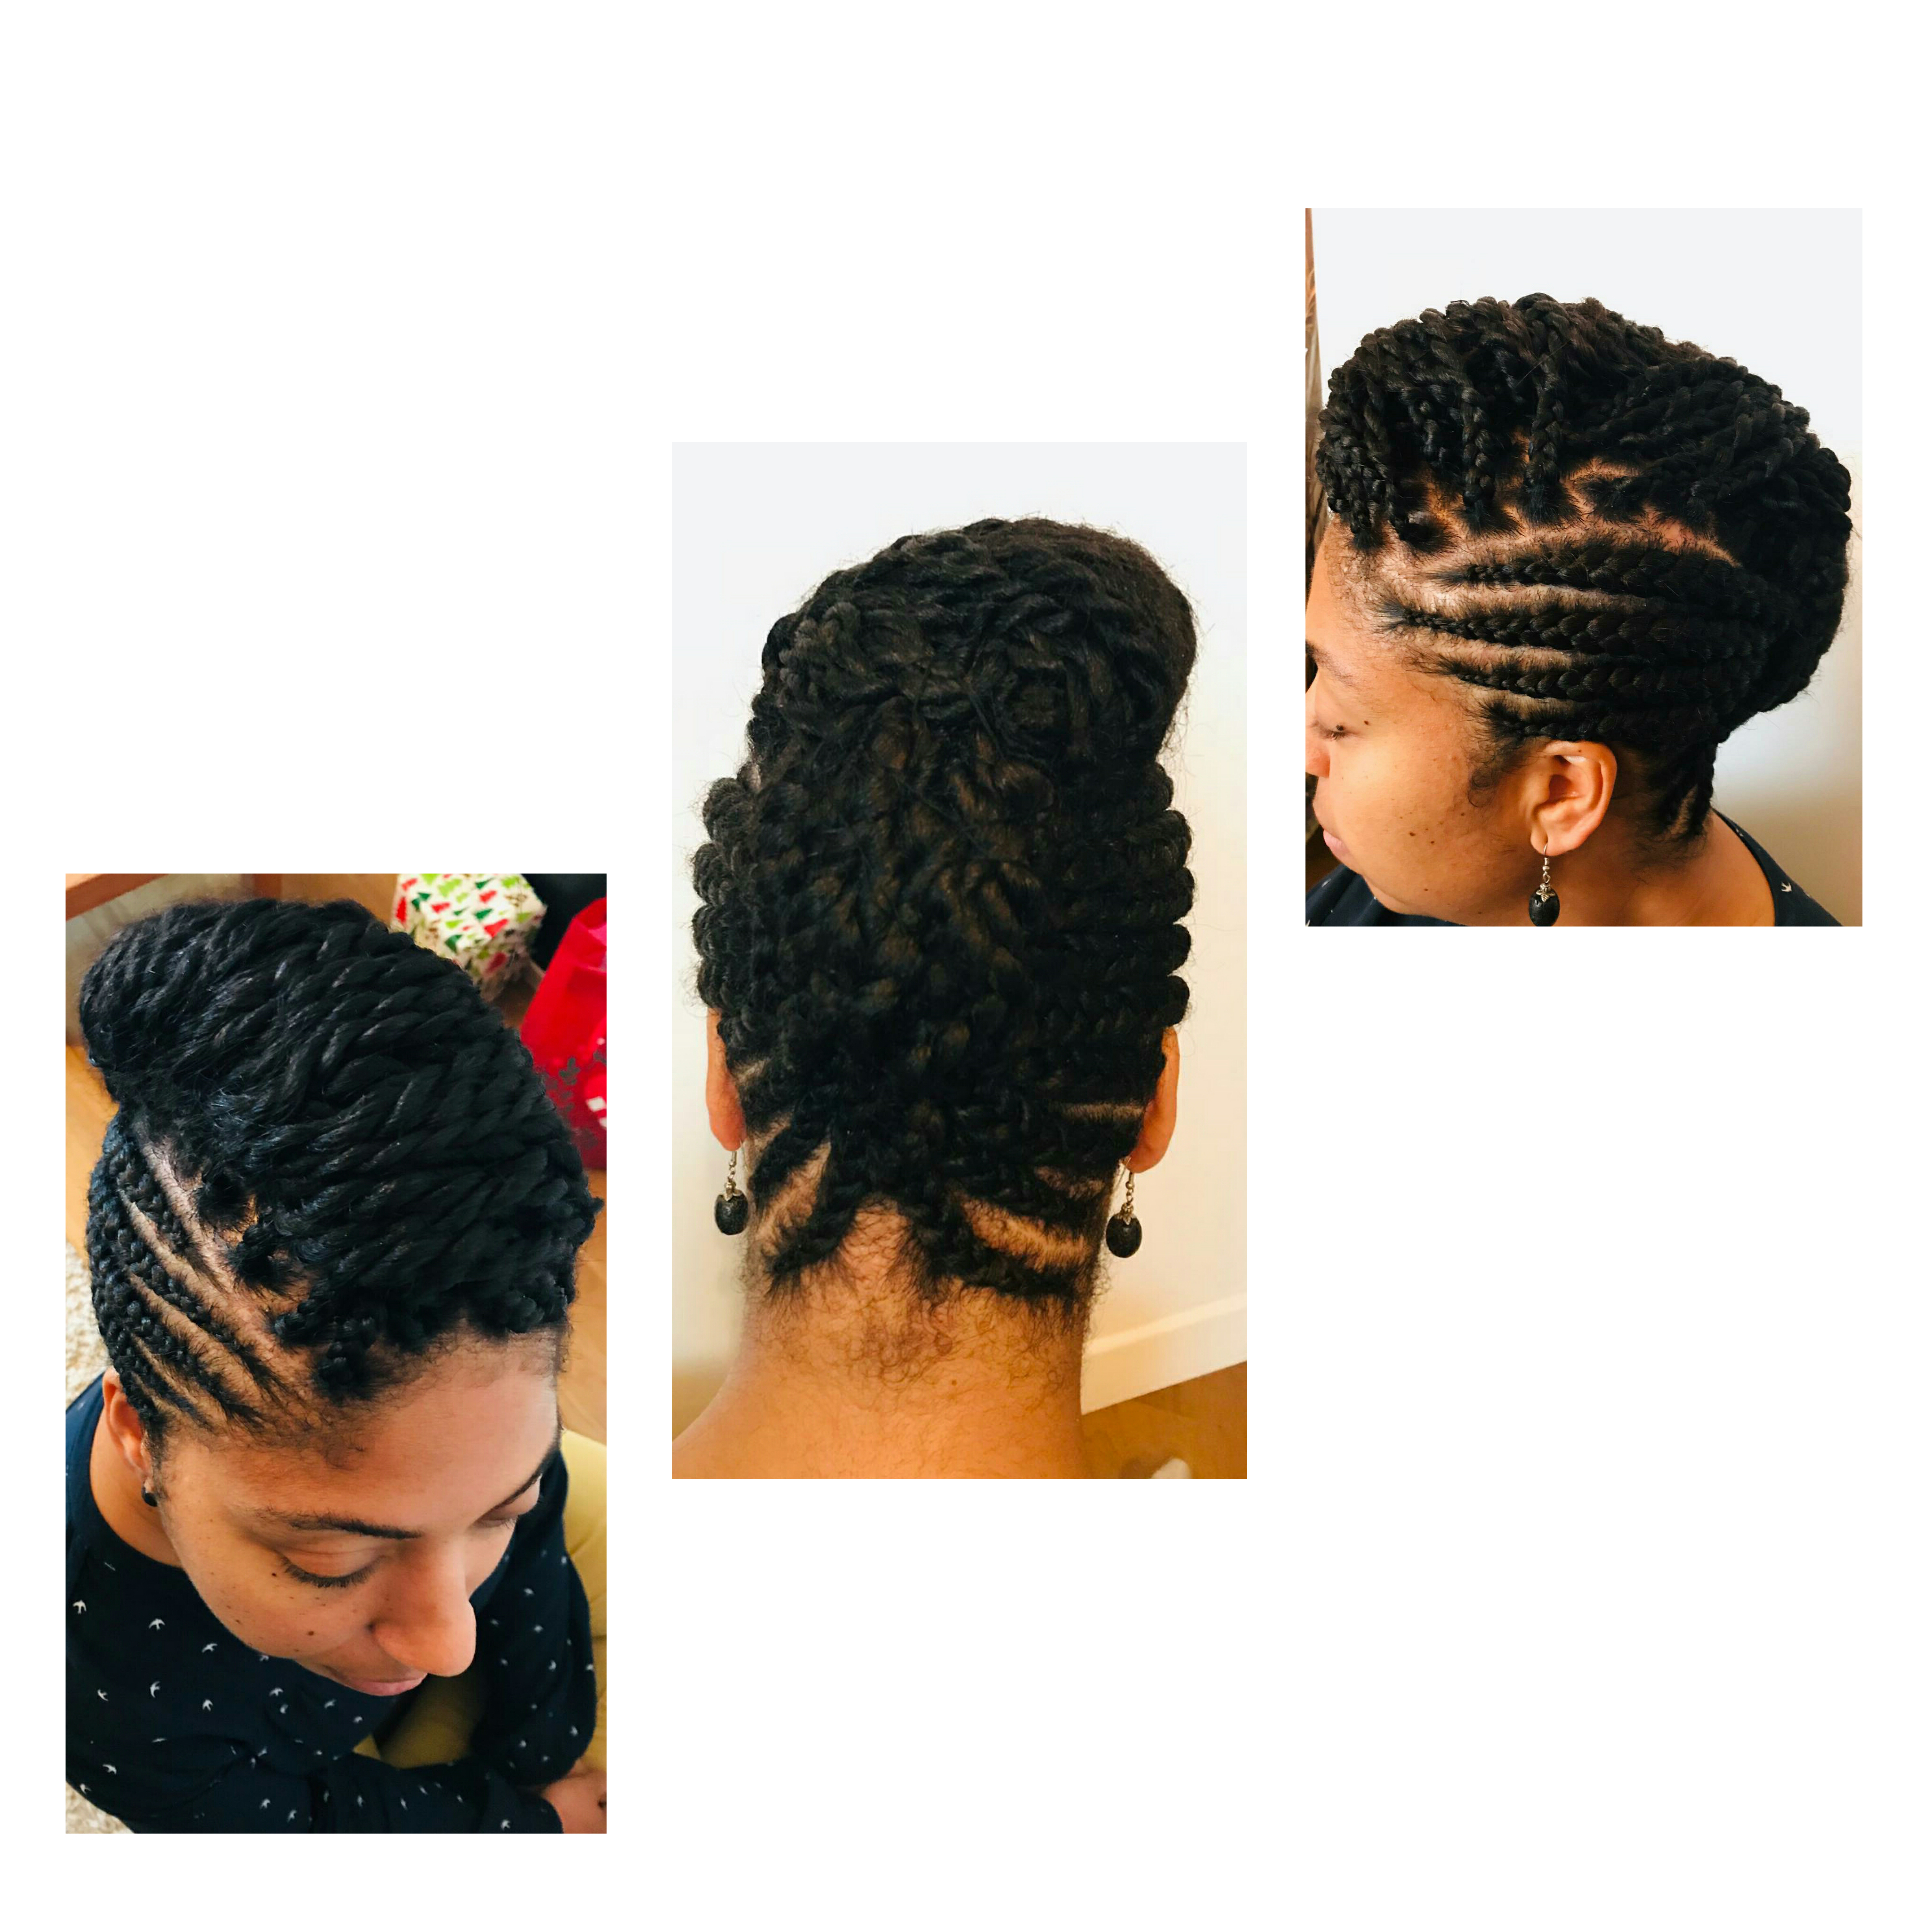 salon de coiffure afro tresse tresses box braids crochet braids vanilles tissages paris 75 77 78 91 92 93 94 95 GISJMLIO